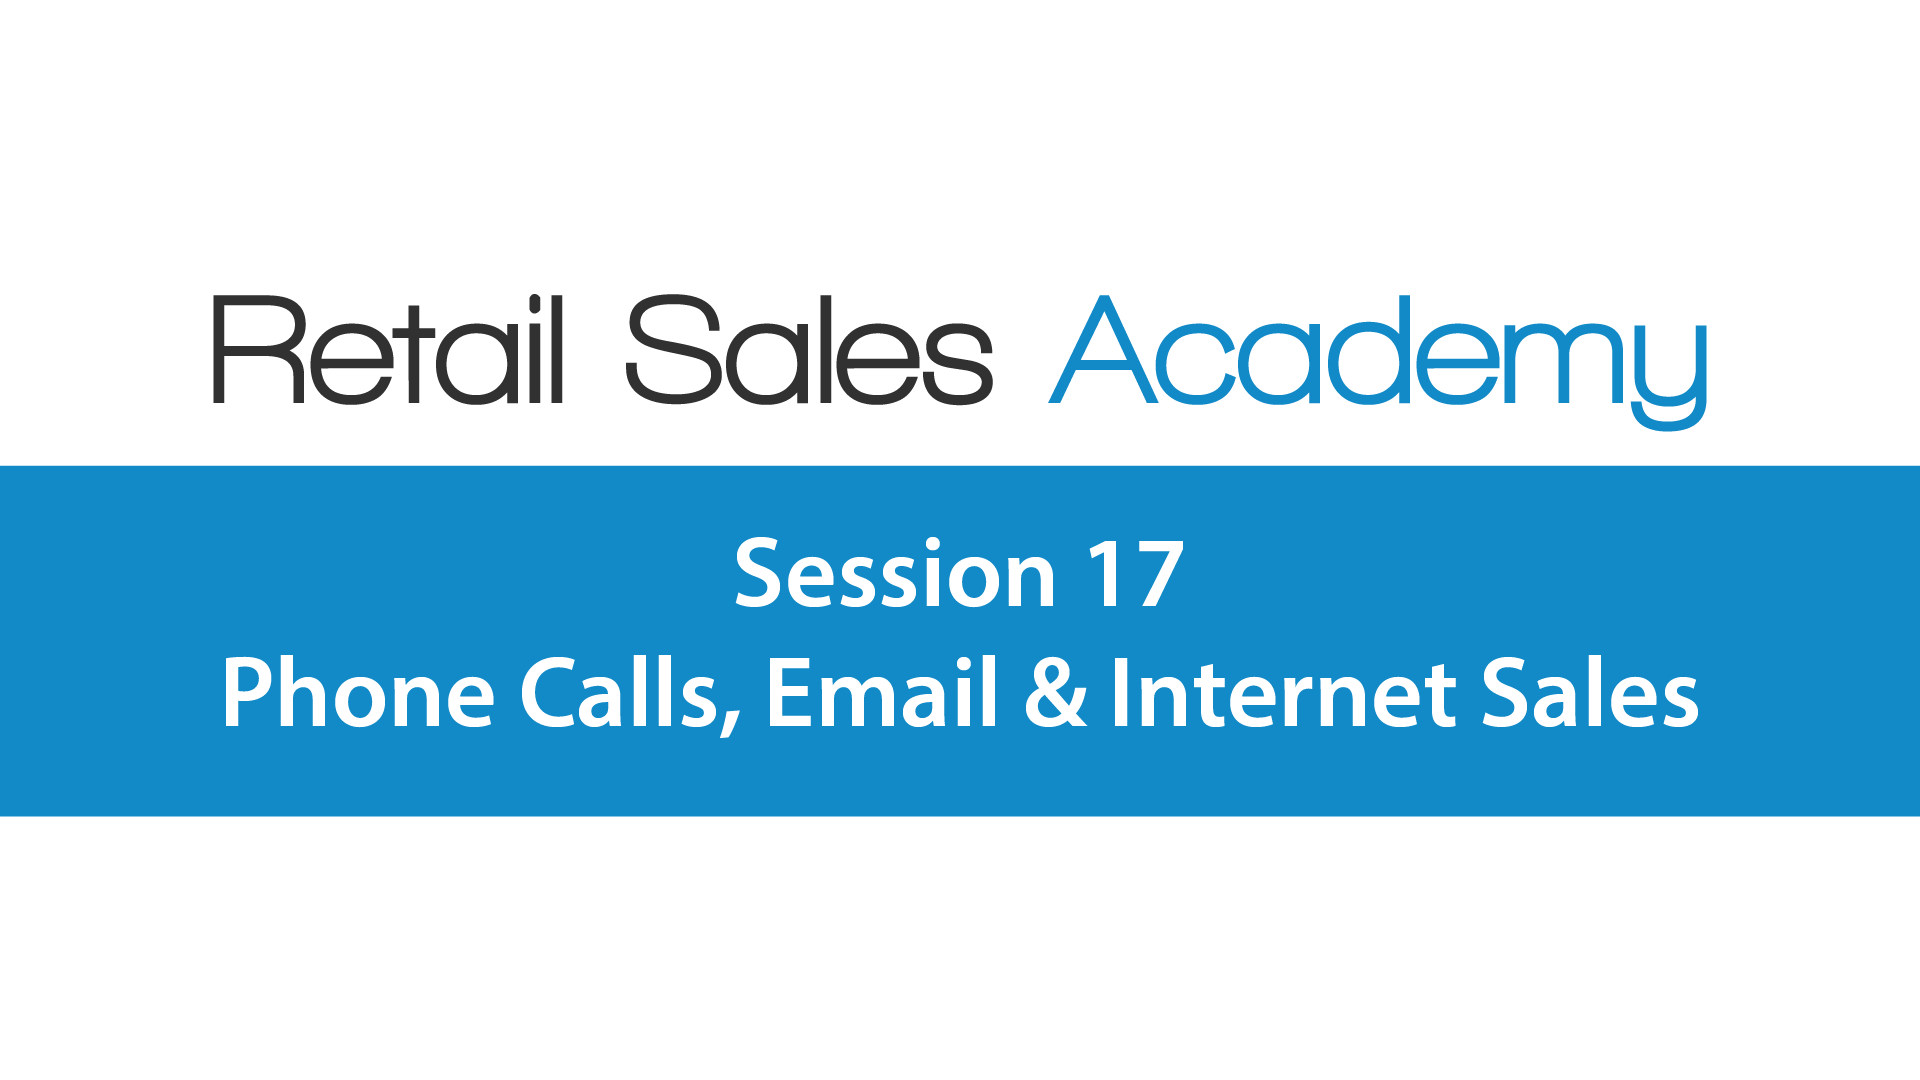 Phone Calls, Email & Internet Sales